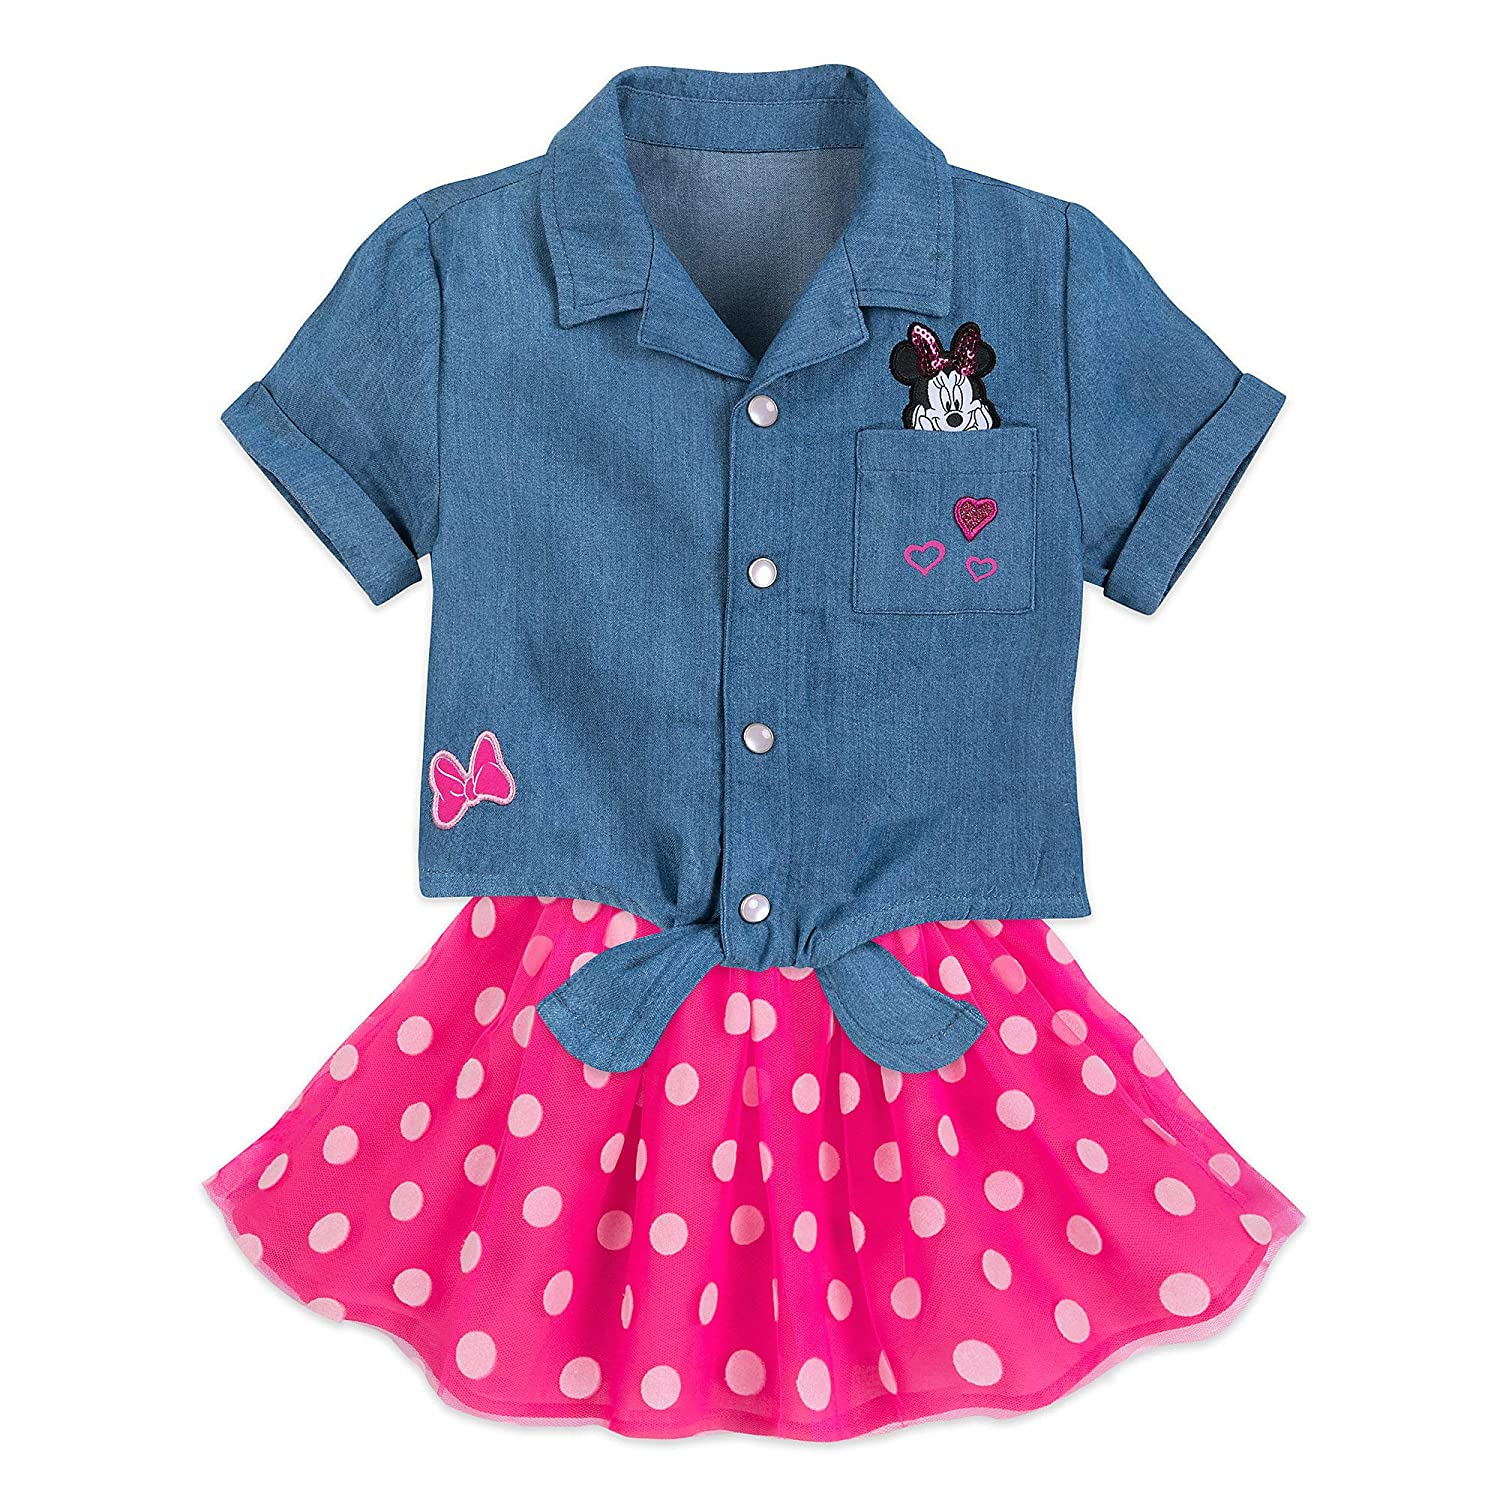 Disney Minnie Mouse Top and Skirt Set for Girls Size 3 Multi